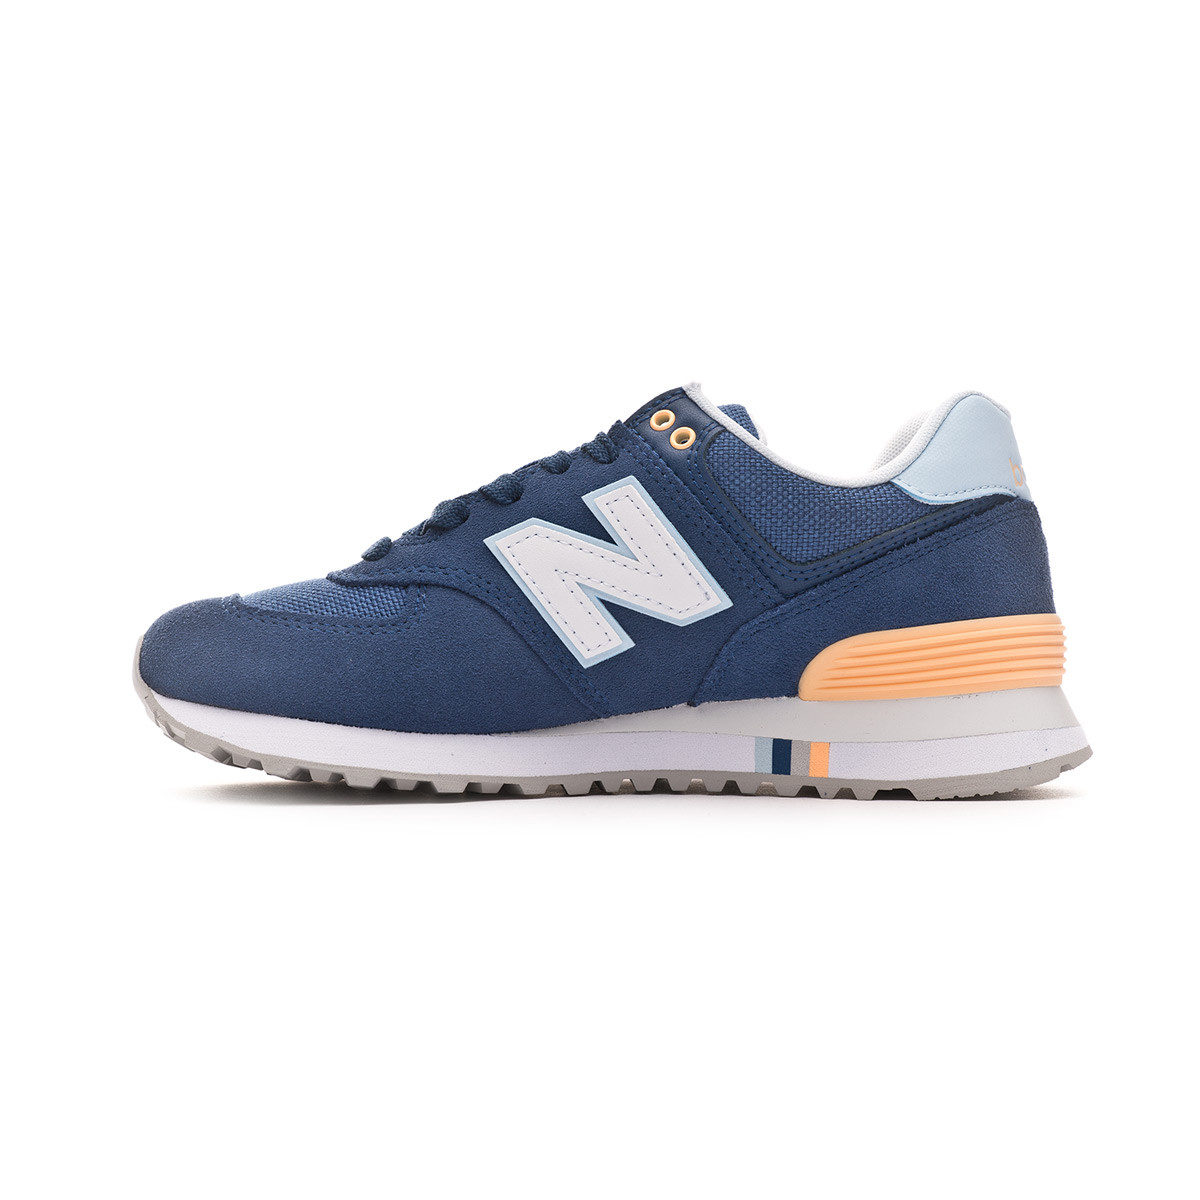 official photos 24b00 6ec84 Trainers New Balance 574 Mujer Blue - Football store Fútbol Emotion